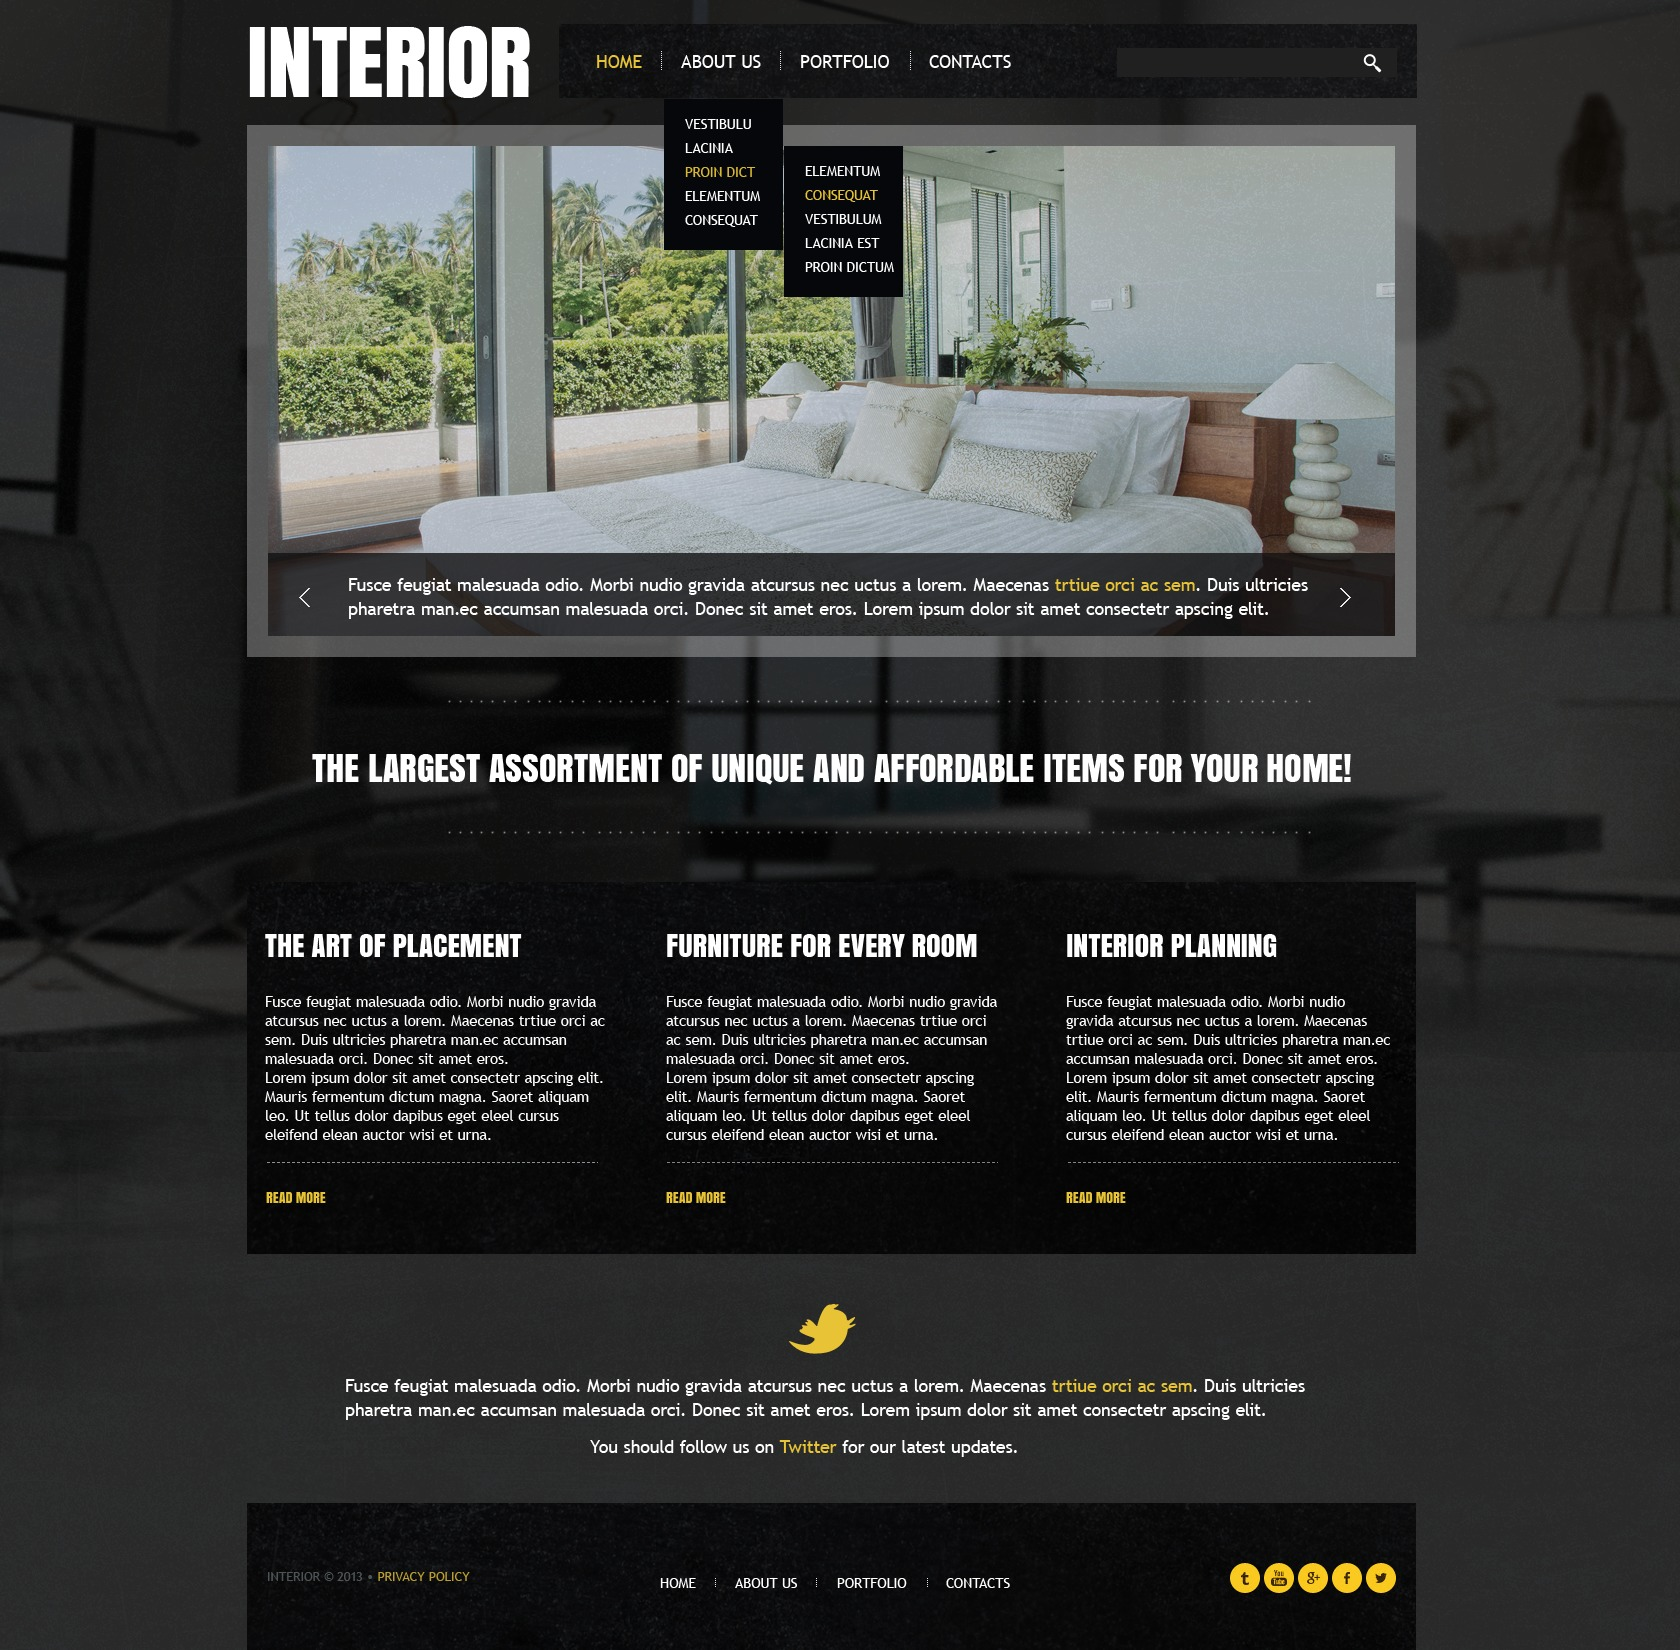 Interior design website template 43165 - Interior design discount websites ...